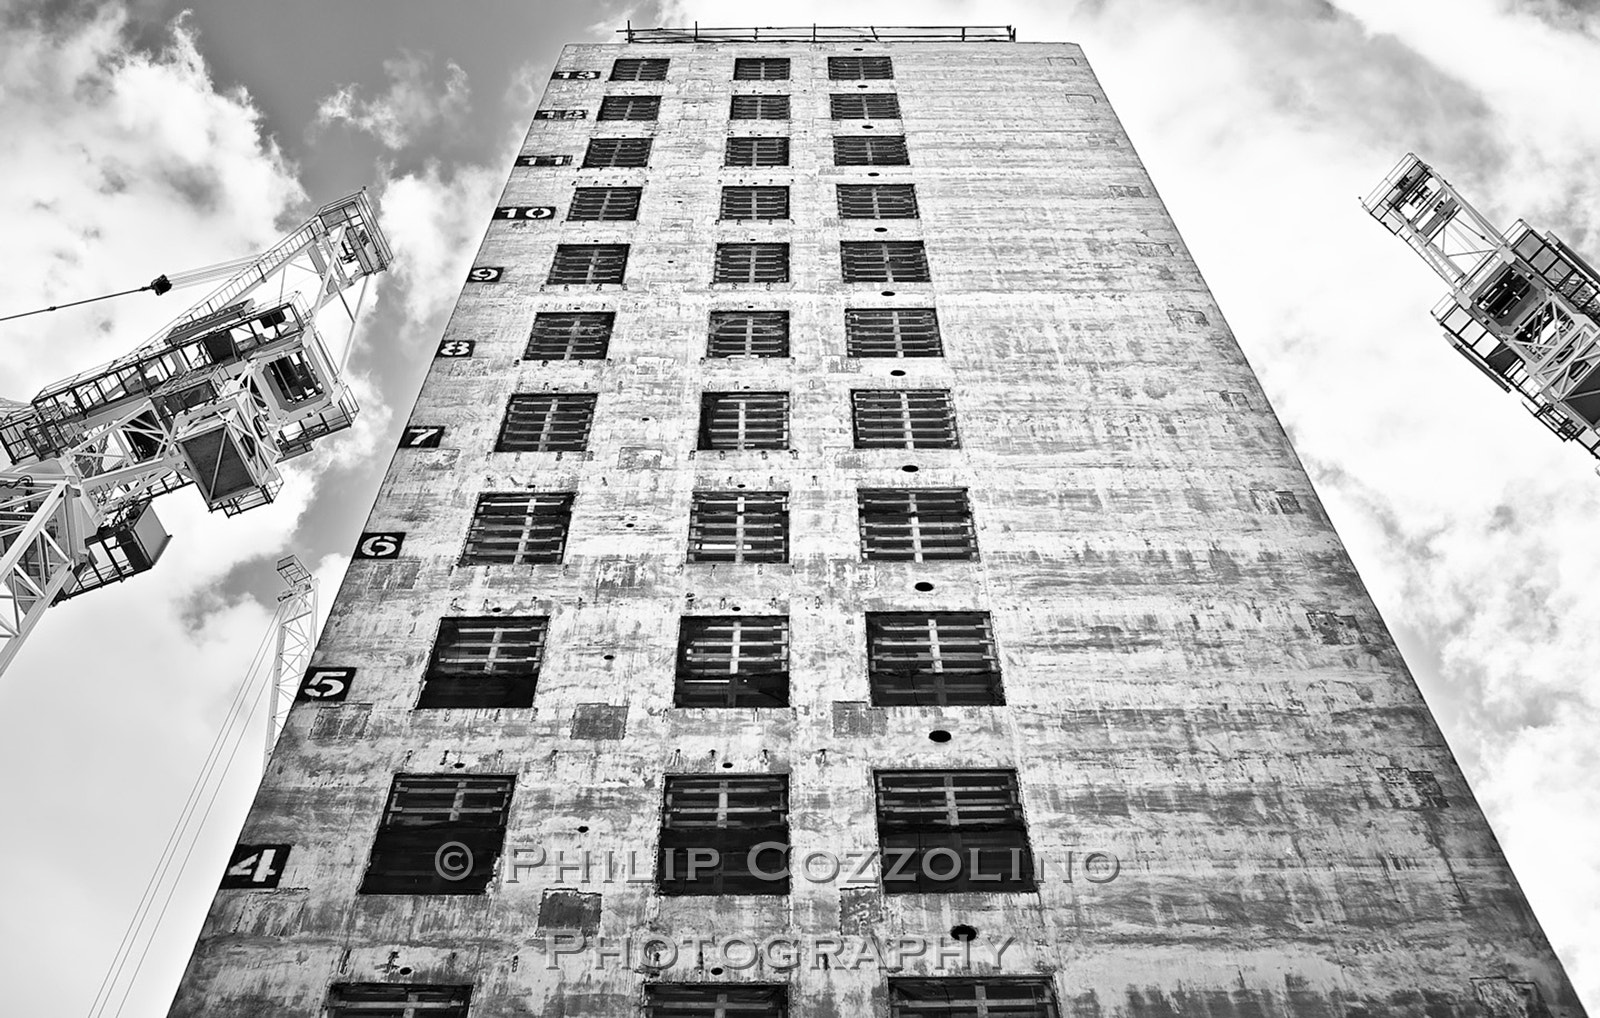 Photograph 13th Floor by Philip Cozzolino on 500px